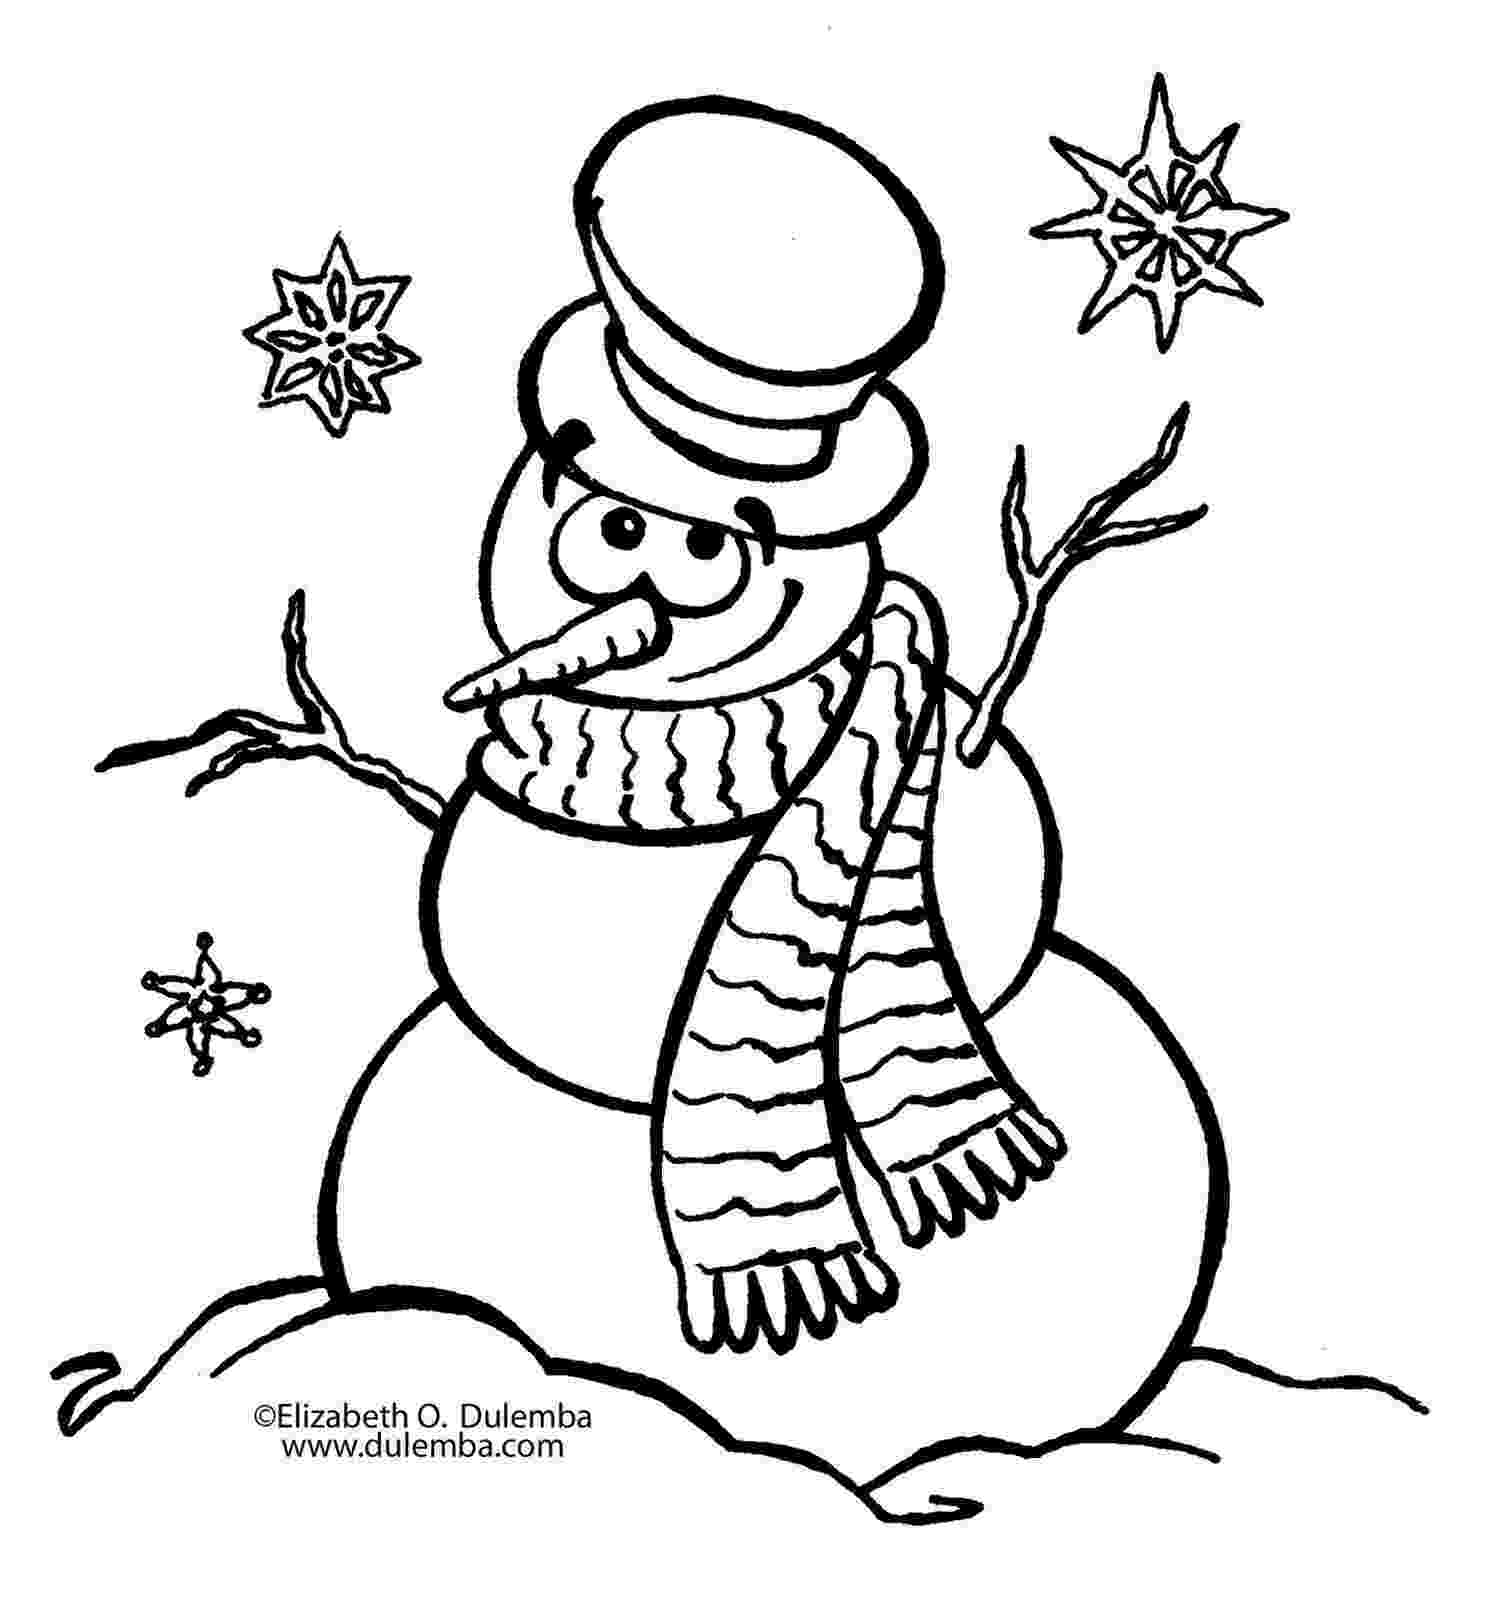 snowmancoloring sheets blank snowman coloring pages gtgt disney coloring pages sheets snowmancoloring